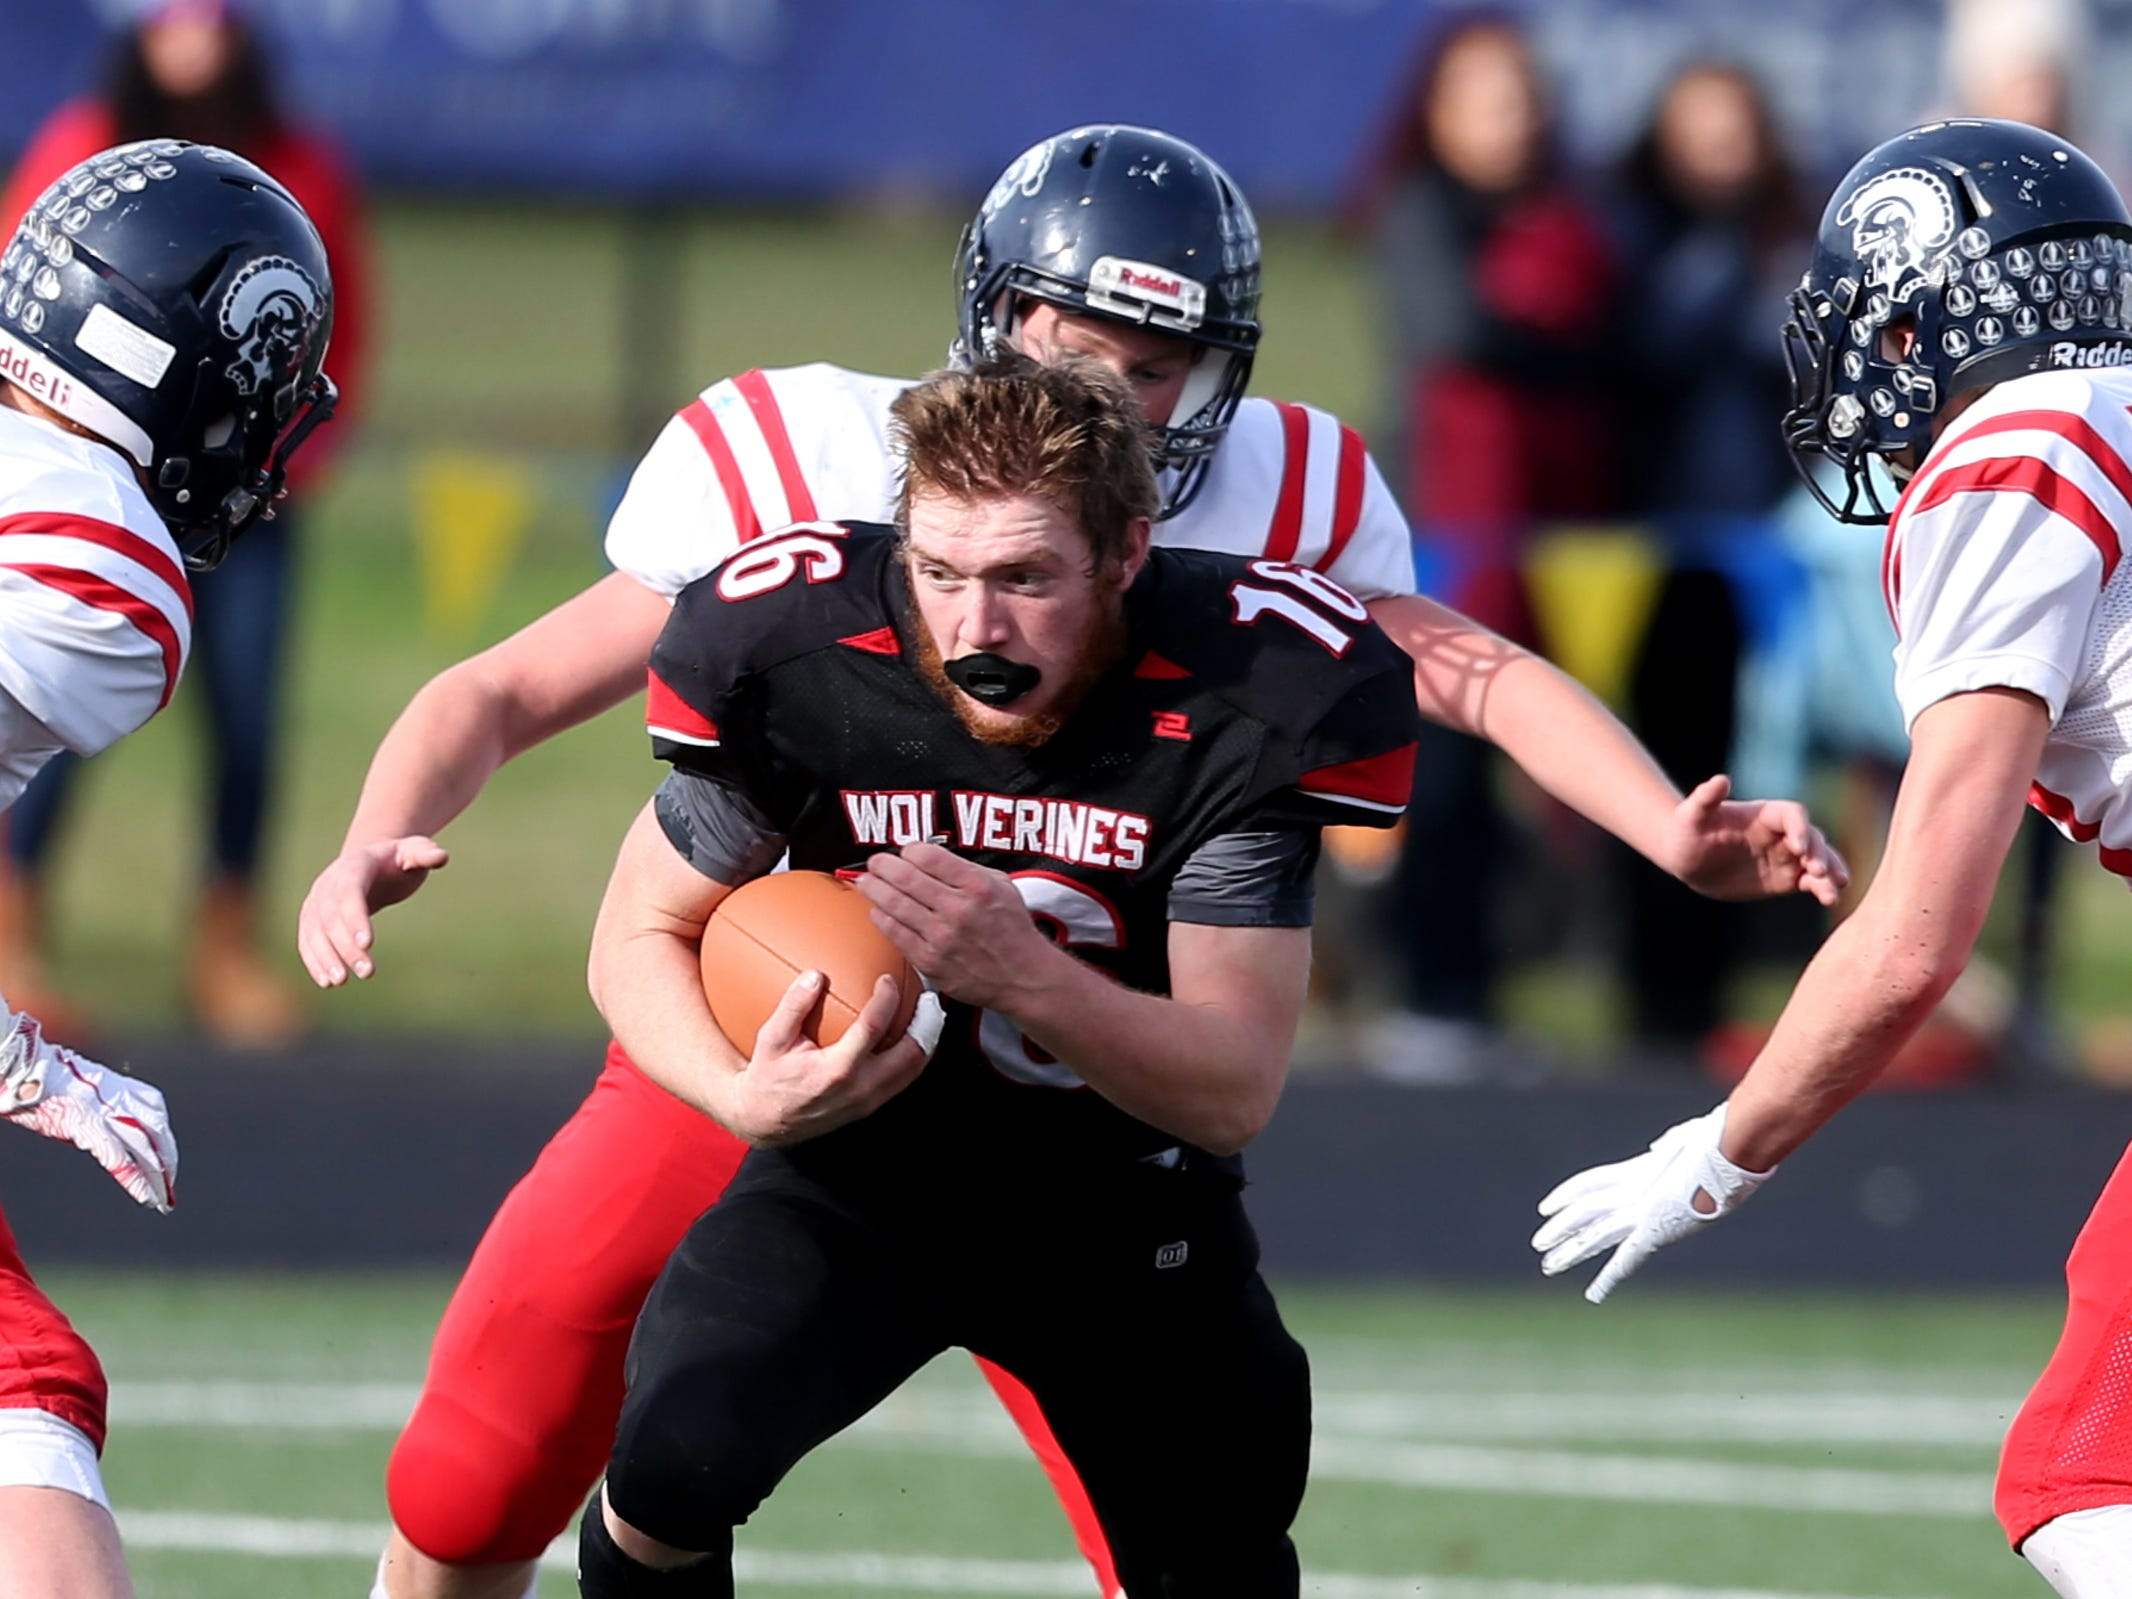 Santiam's Trevor Tinney (16) loses his helmet in the Kennedy vs. Santiam OSAA Class 2A state championship football game at Cottage Grove High School in Cottage Grove on Saturday, Nov. 24, 2018.